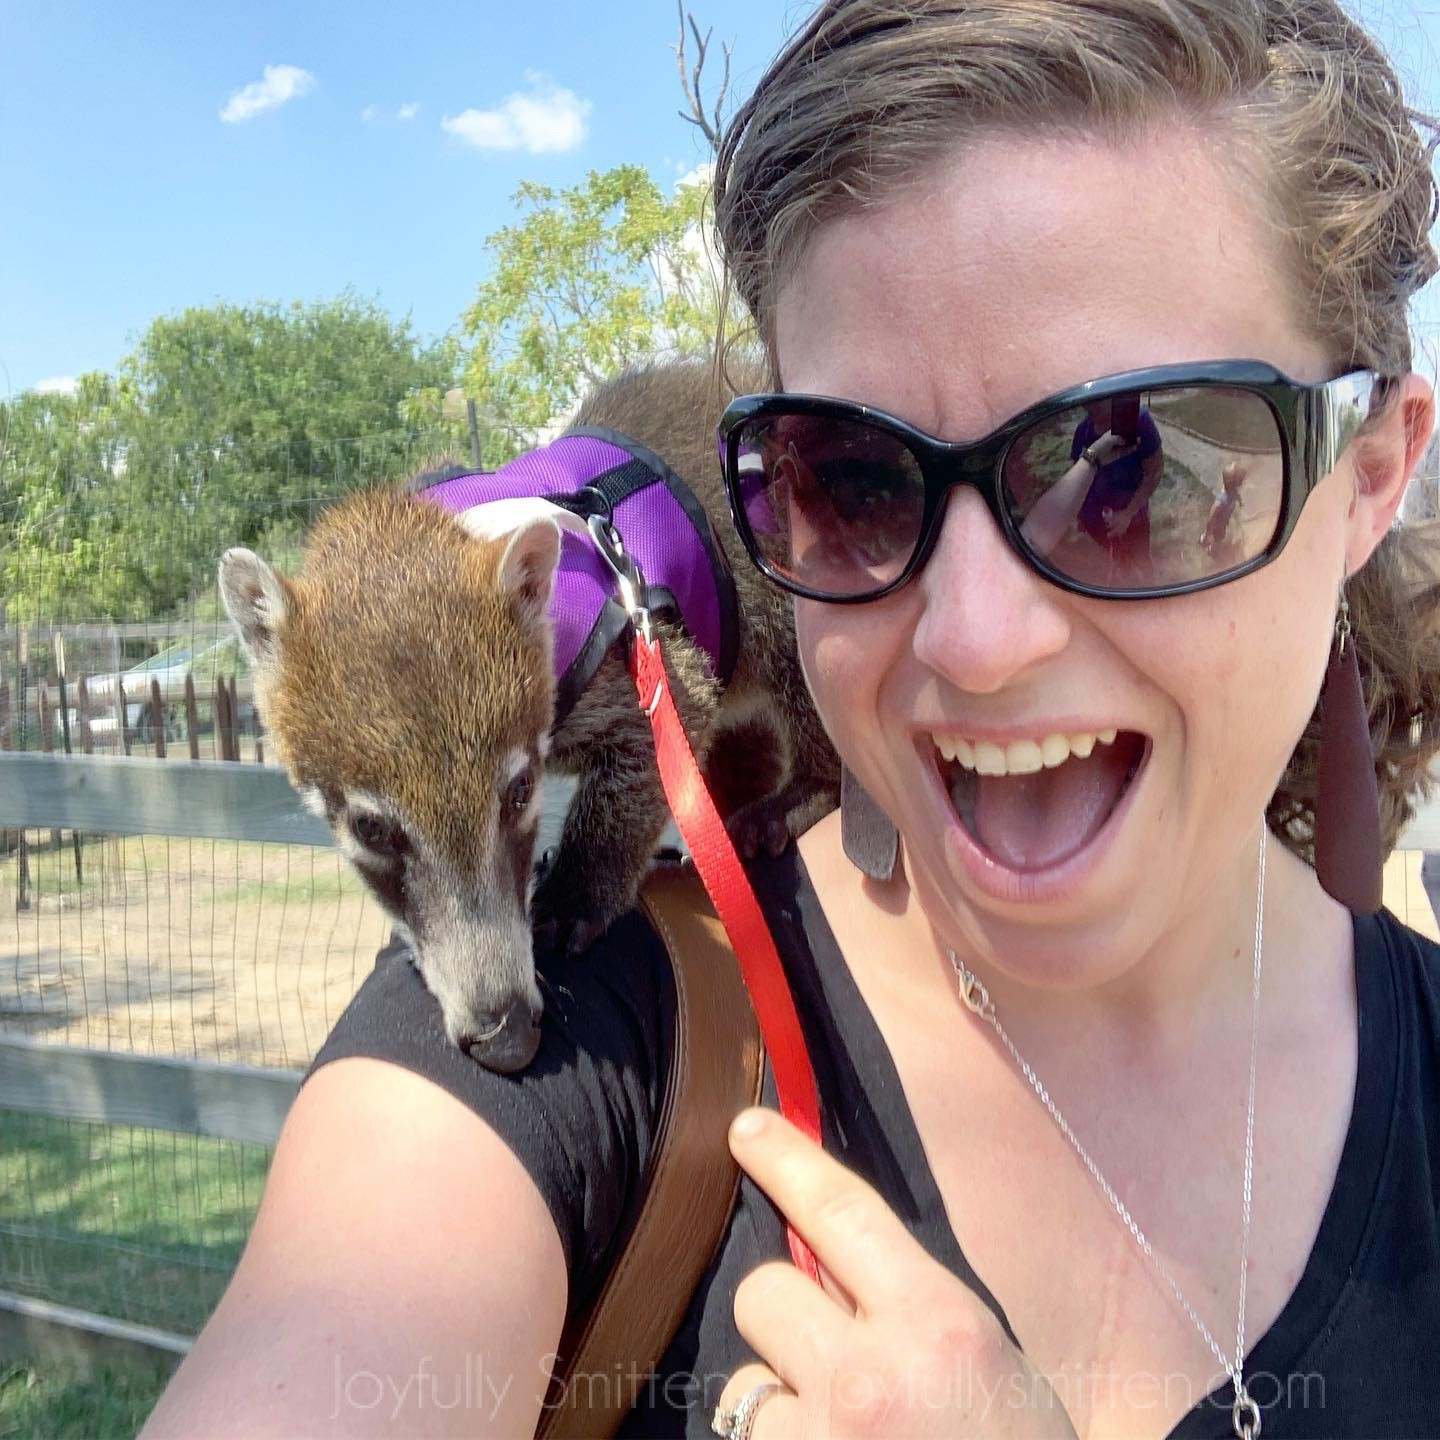 Kangaroos and Coatis -oh my!